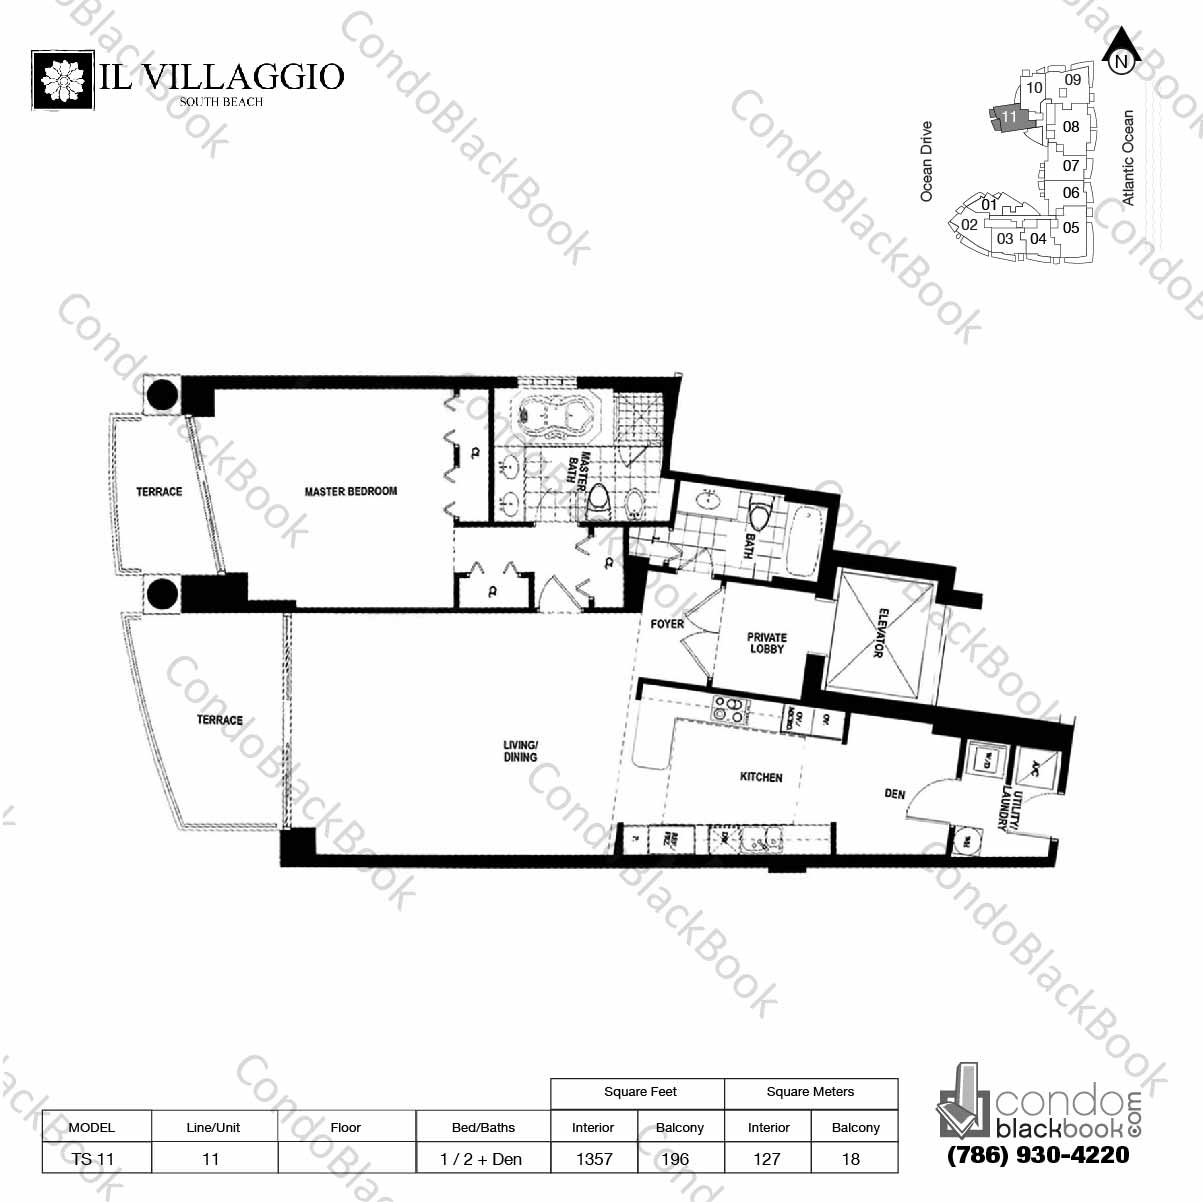 Floor plan for Il Villaggio South Beach Miami Beach, model TS-11, line 11, 1 / 2 + Den bedrooms, 1357 sq ft